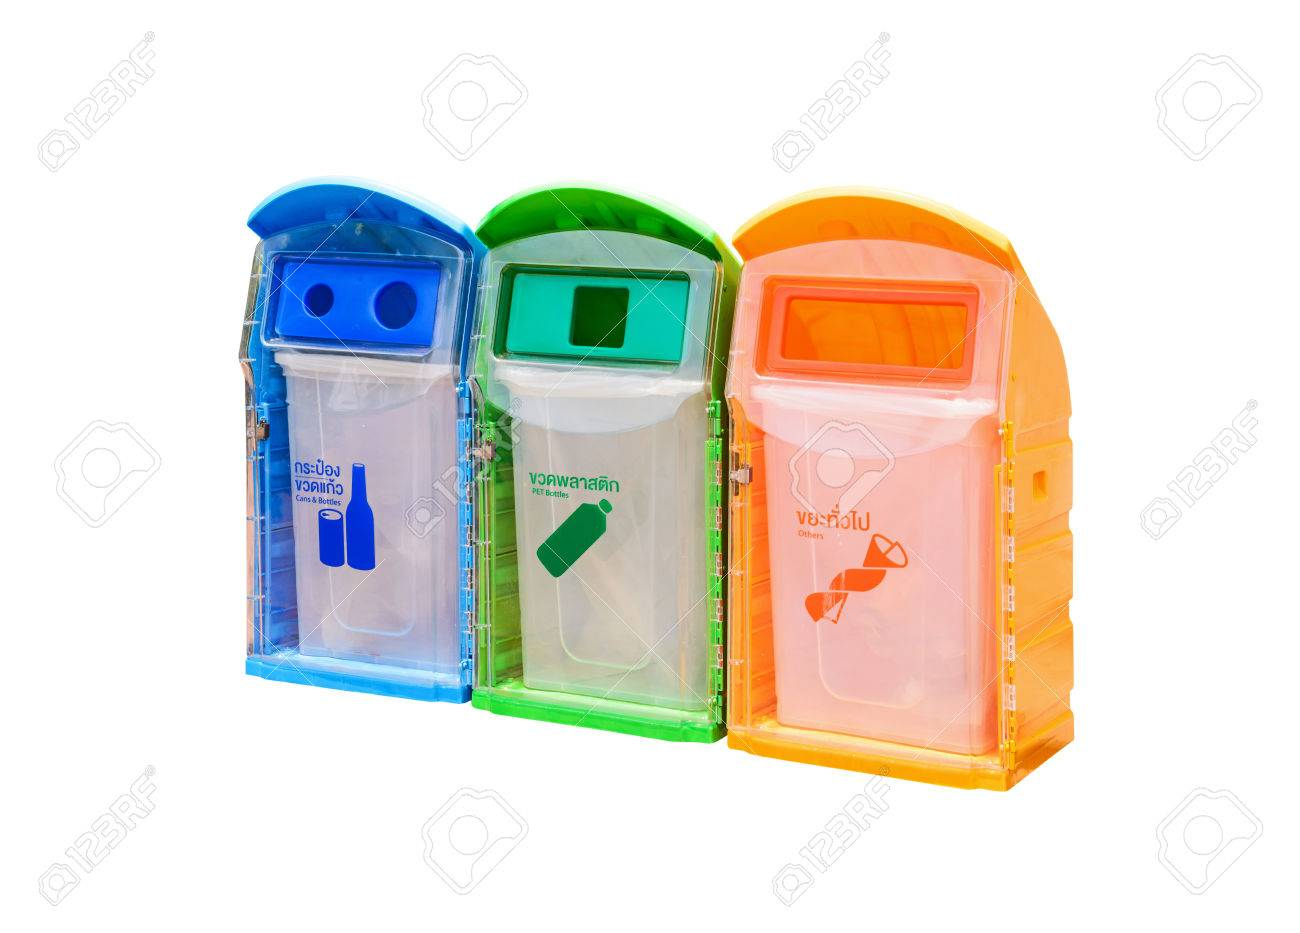 Cool Trash Bins Three Plastic Trash Bins Recycle Bins Cans And Bottles Pet